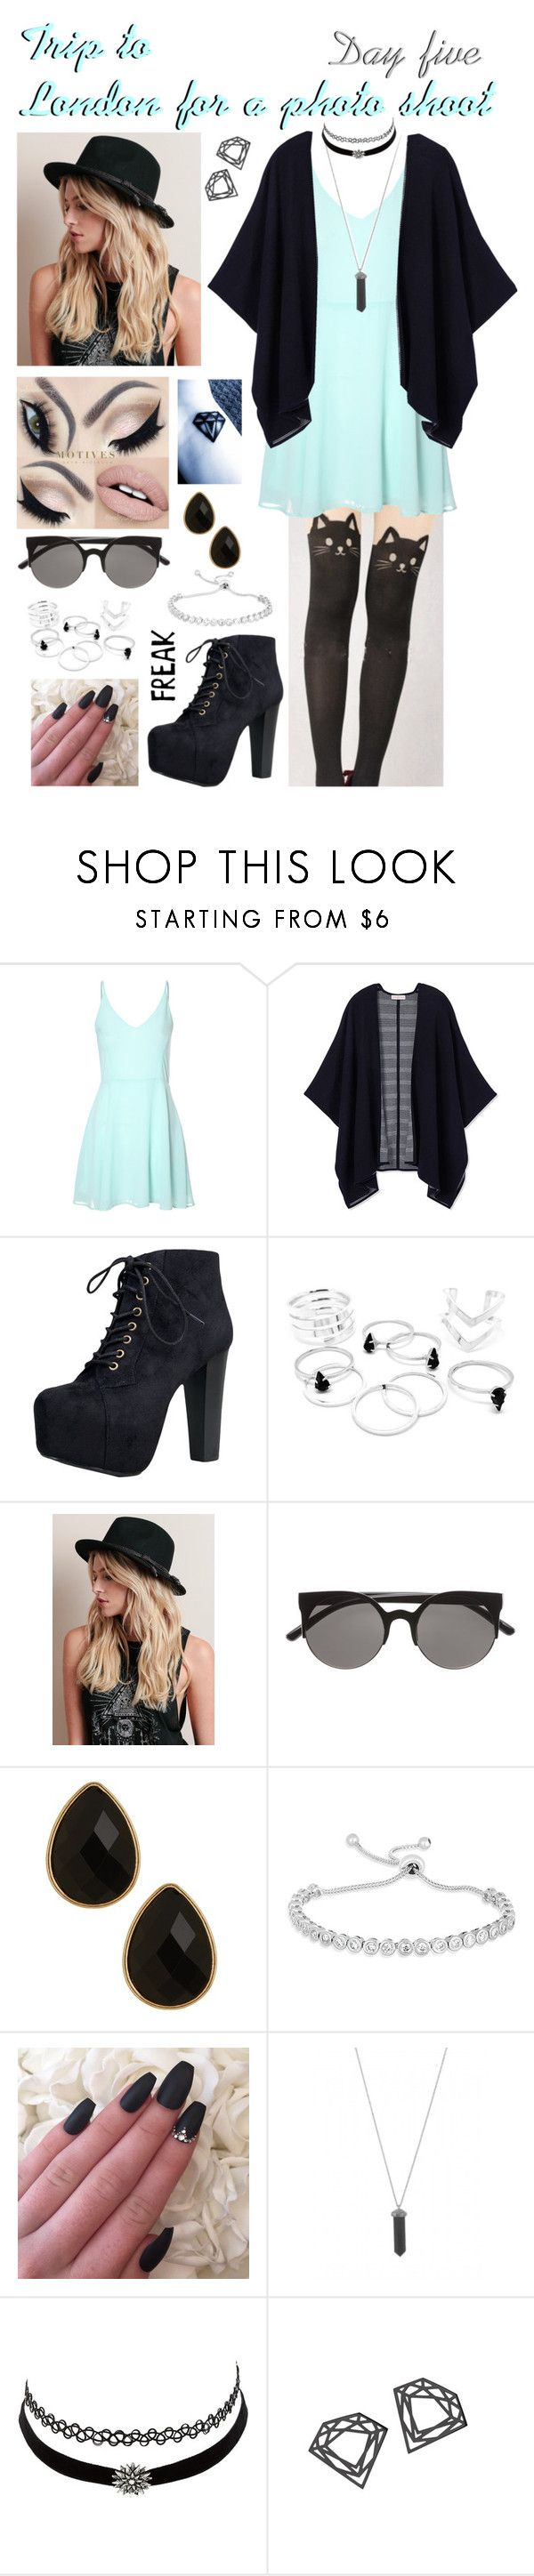 """""""Day 5, trip to London for a photo shot"""" by love-wasted ❤ liked on Polyvore featuring Glamorous, Tory Burch, Speed Limit 98, Natasha, Karen Kane, Charlotte Russe, Myia Bonner, London and photoshoot"""